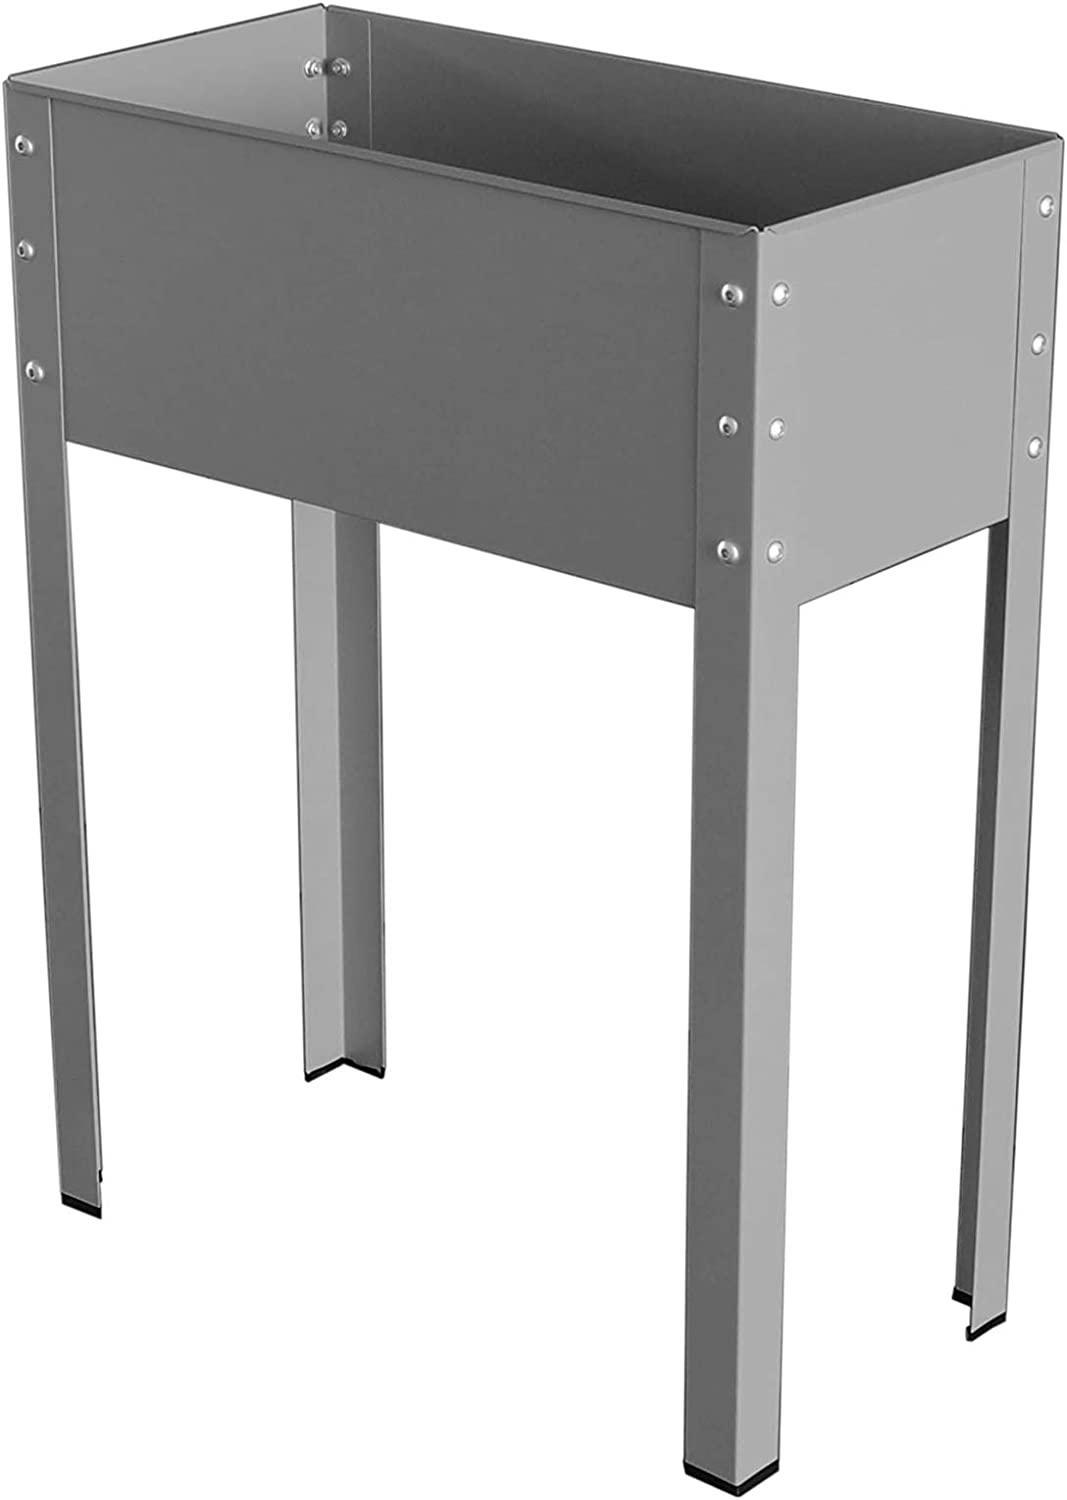 Bio Green MHF Galavized & powdercoated Metal Elevated Planter Freising-L,24x12x31.5, Small, Antracite